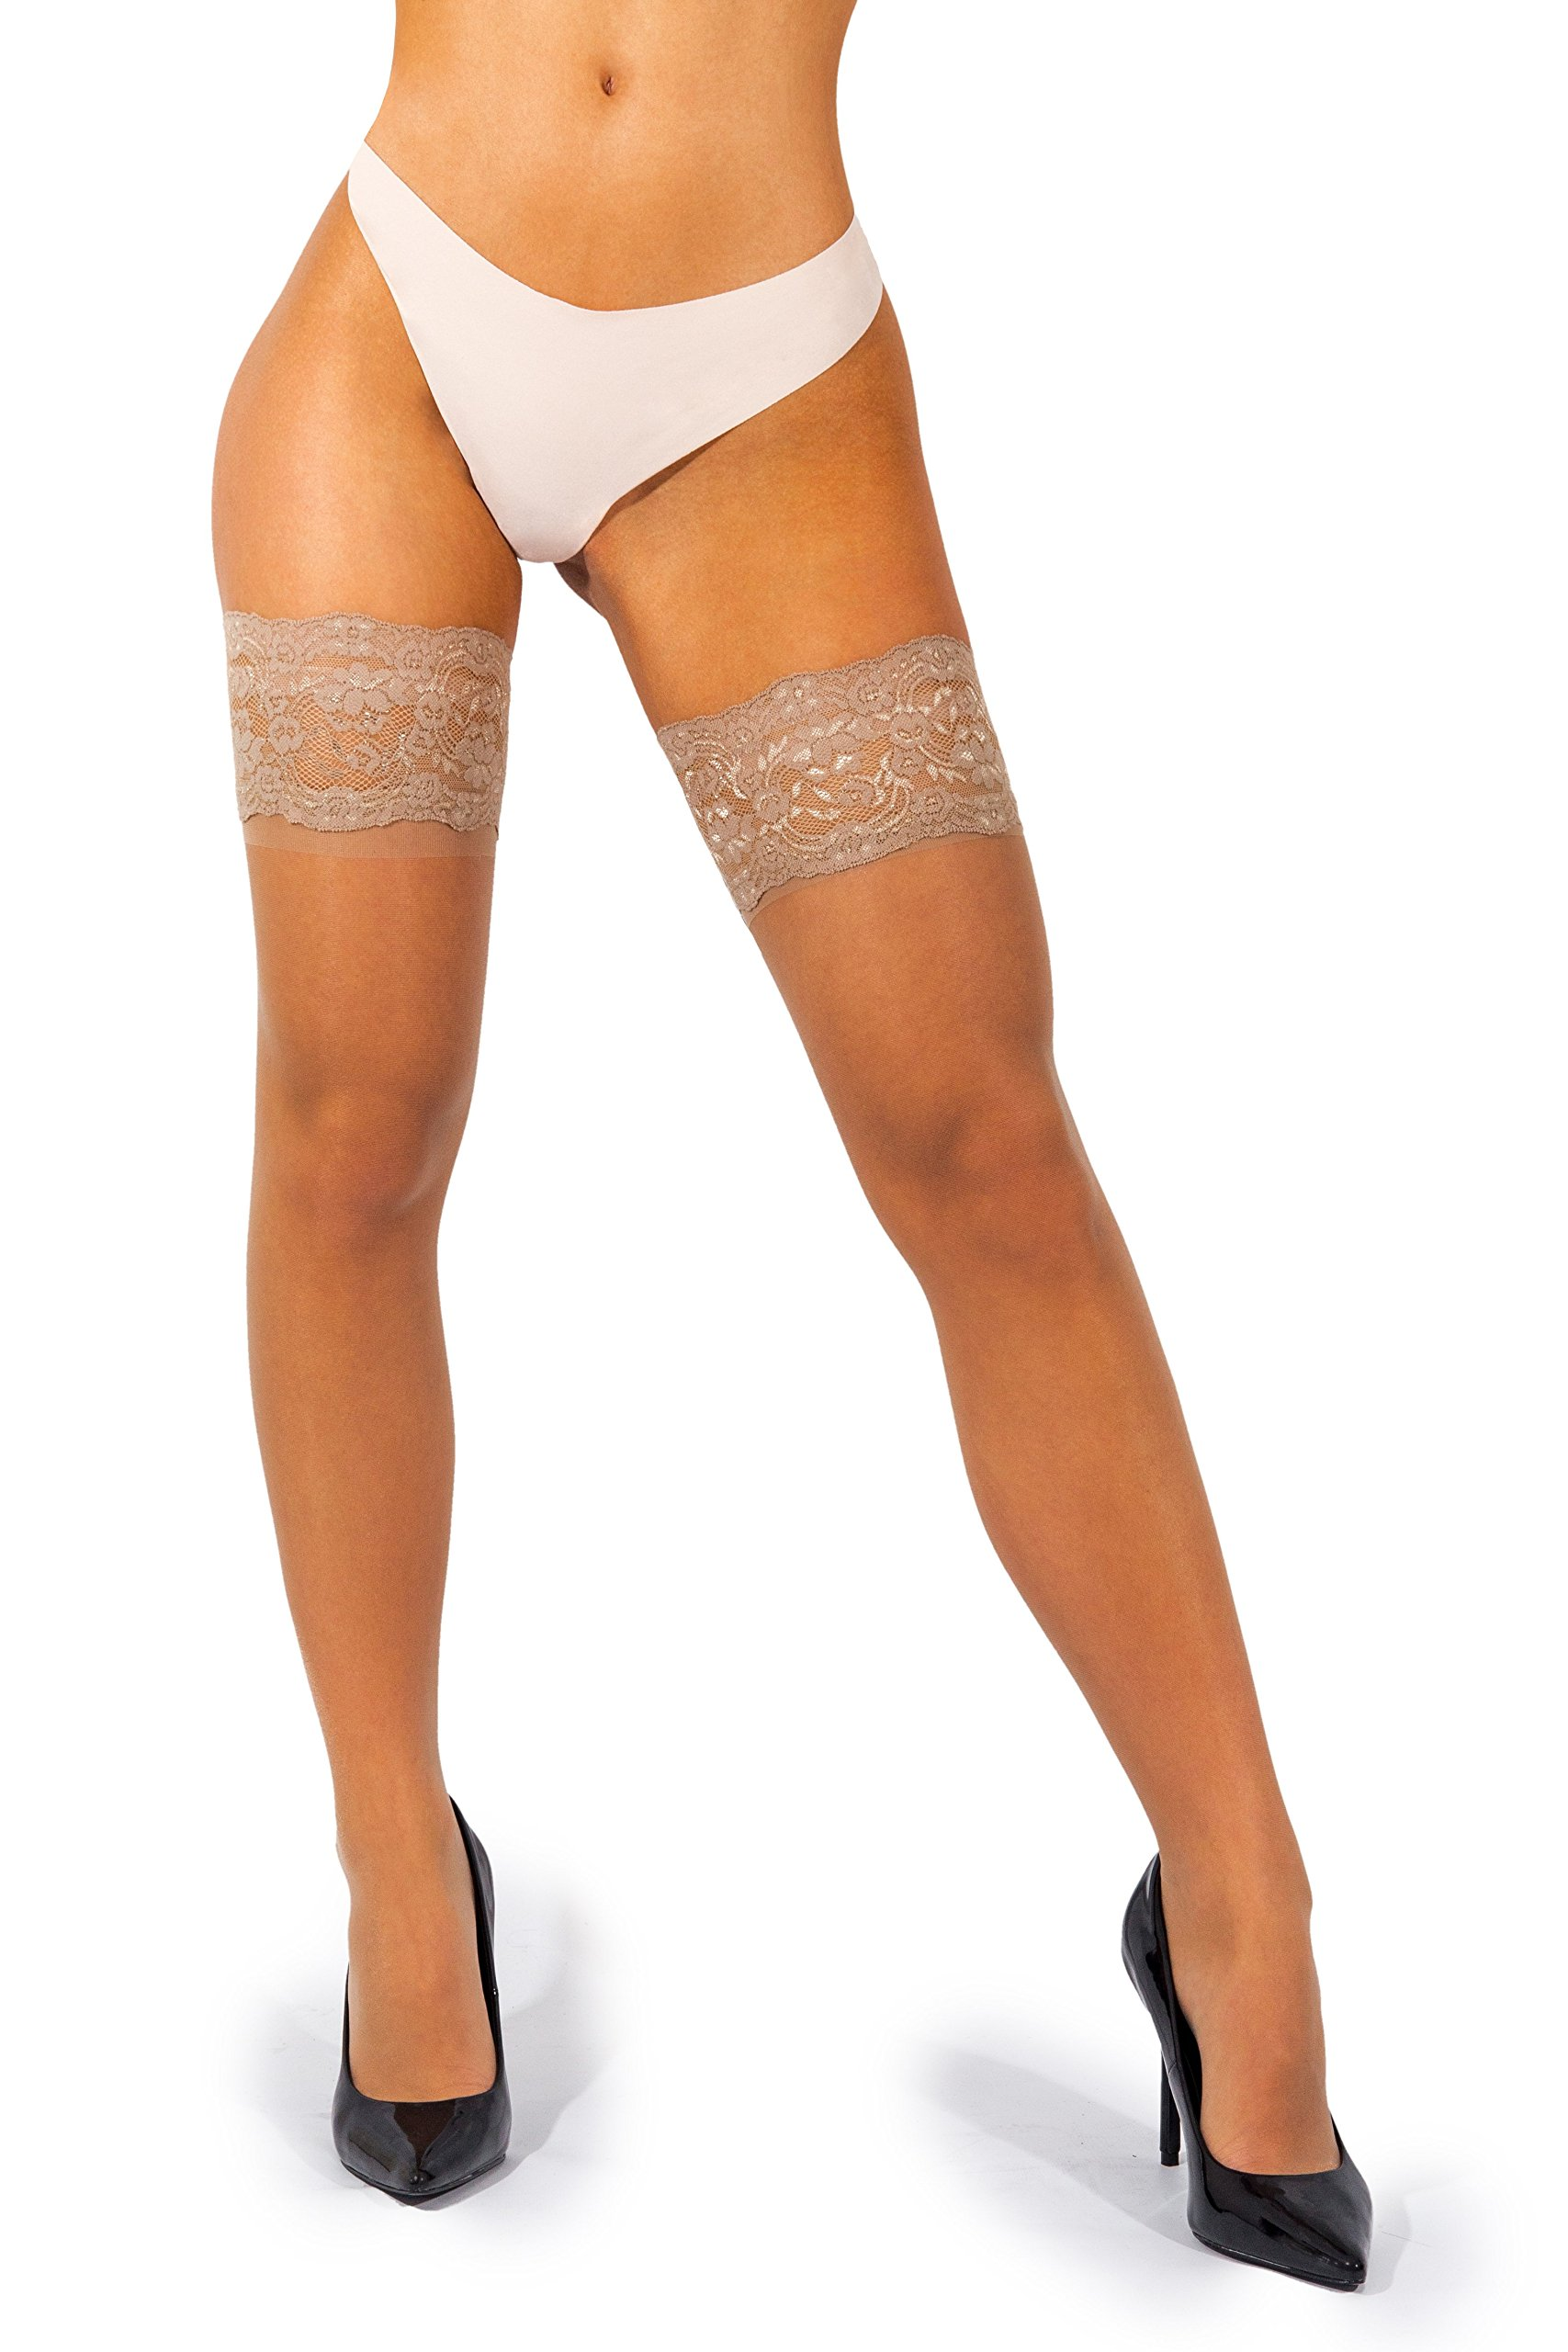 sofsy Lace Thigh-High Sheer Hold-Up Nylon Pantyhose Stockings Deep Wide Silicone Top 20 Denier [Made in Italy] Natural Beige 3/4 Medium/Large cd